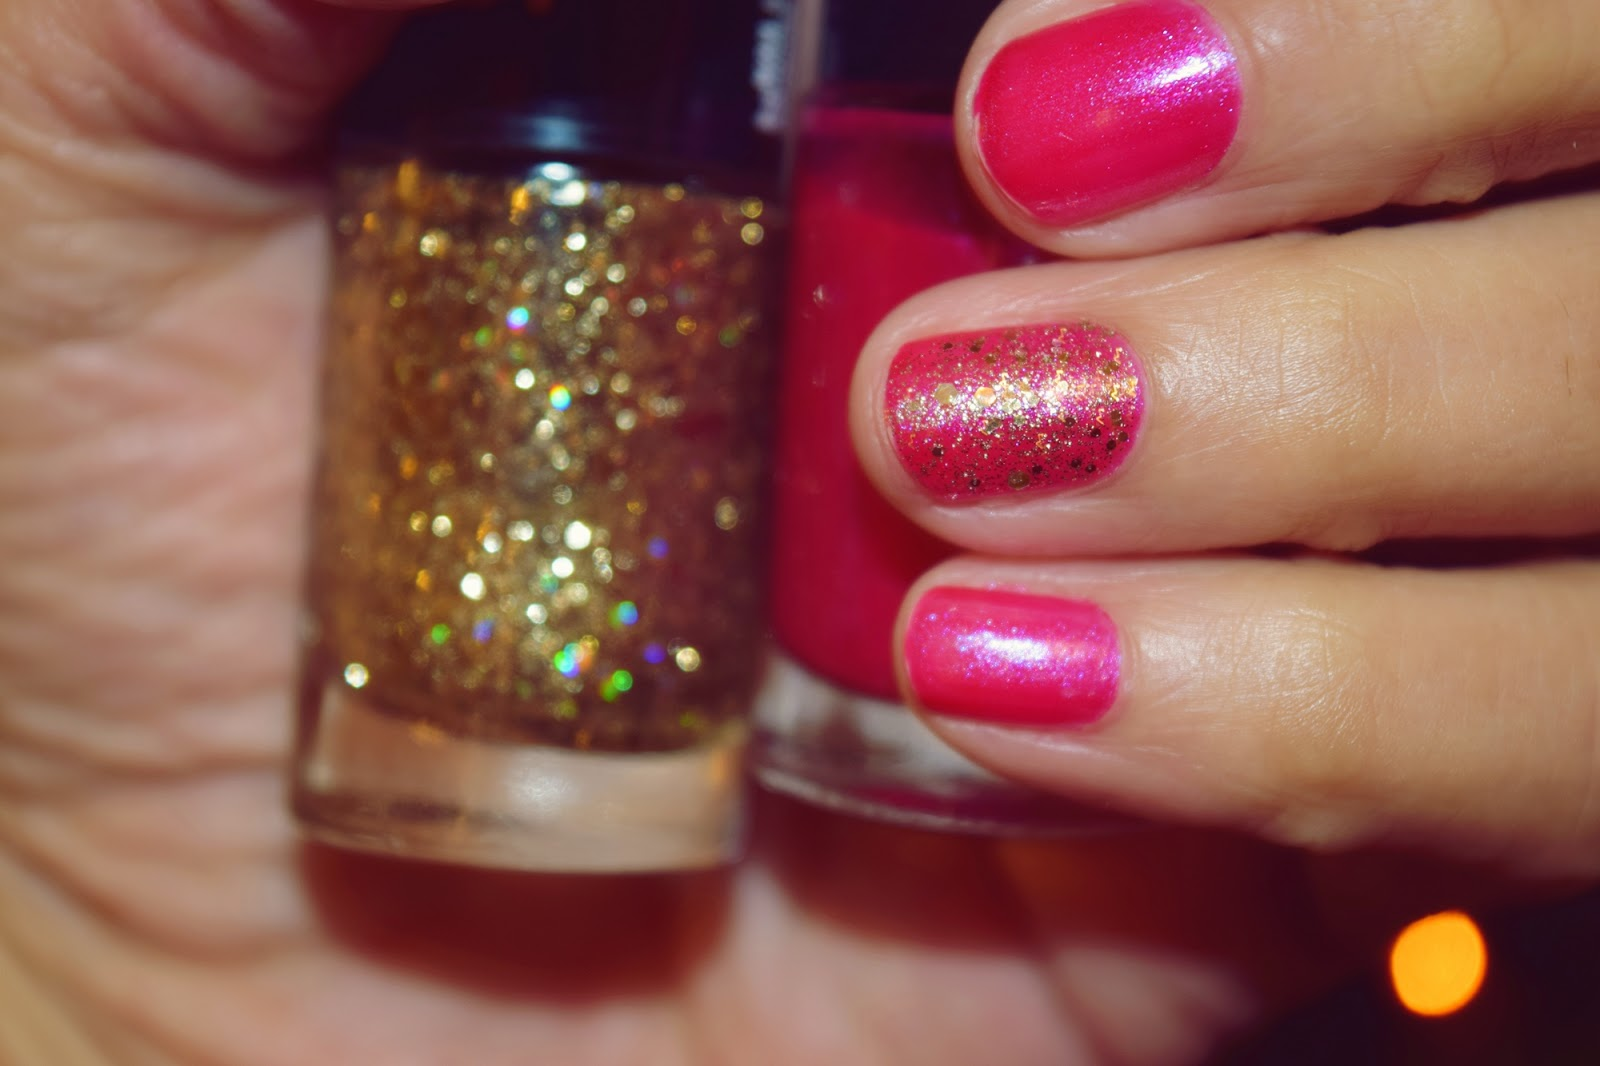 Maybelline's Crushed Candy & Gold's Night Out Nail Polishes